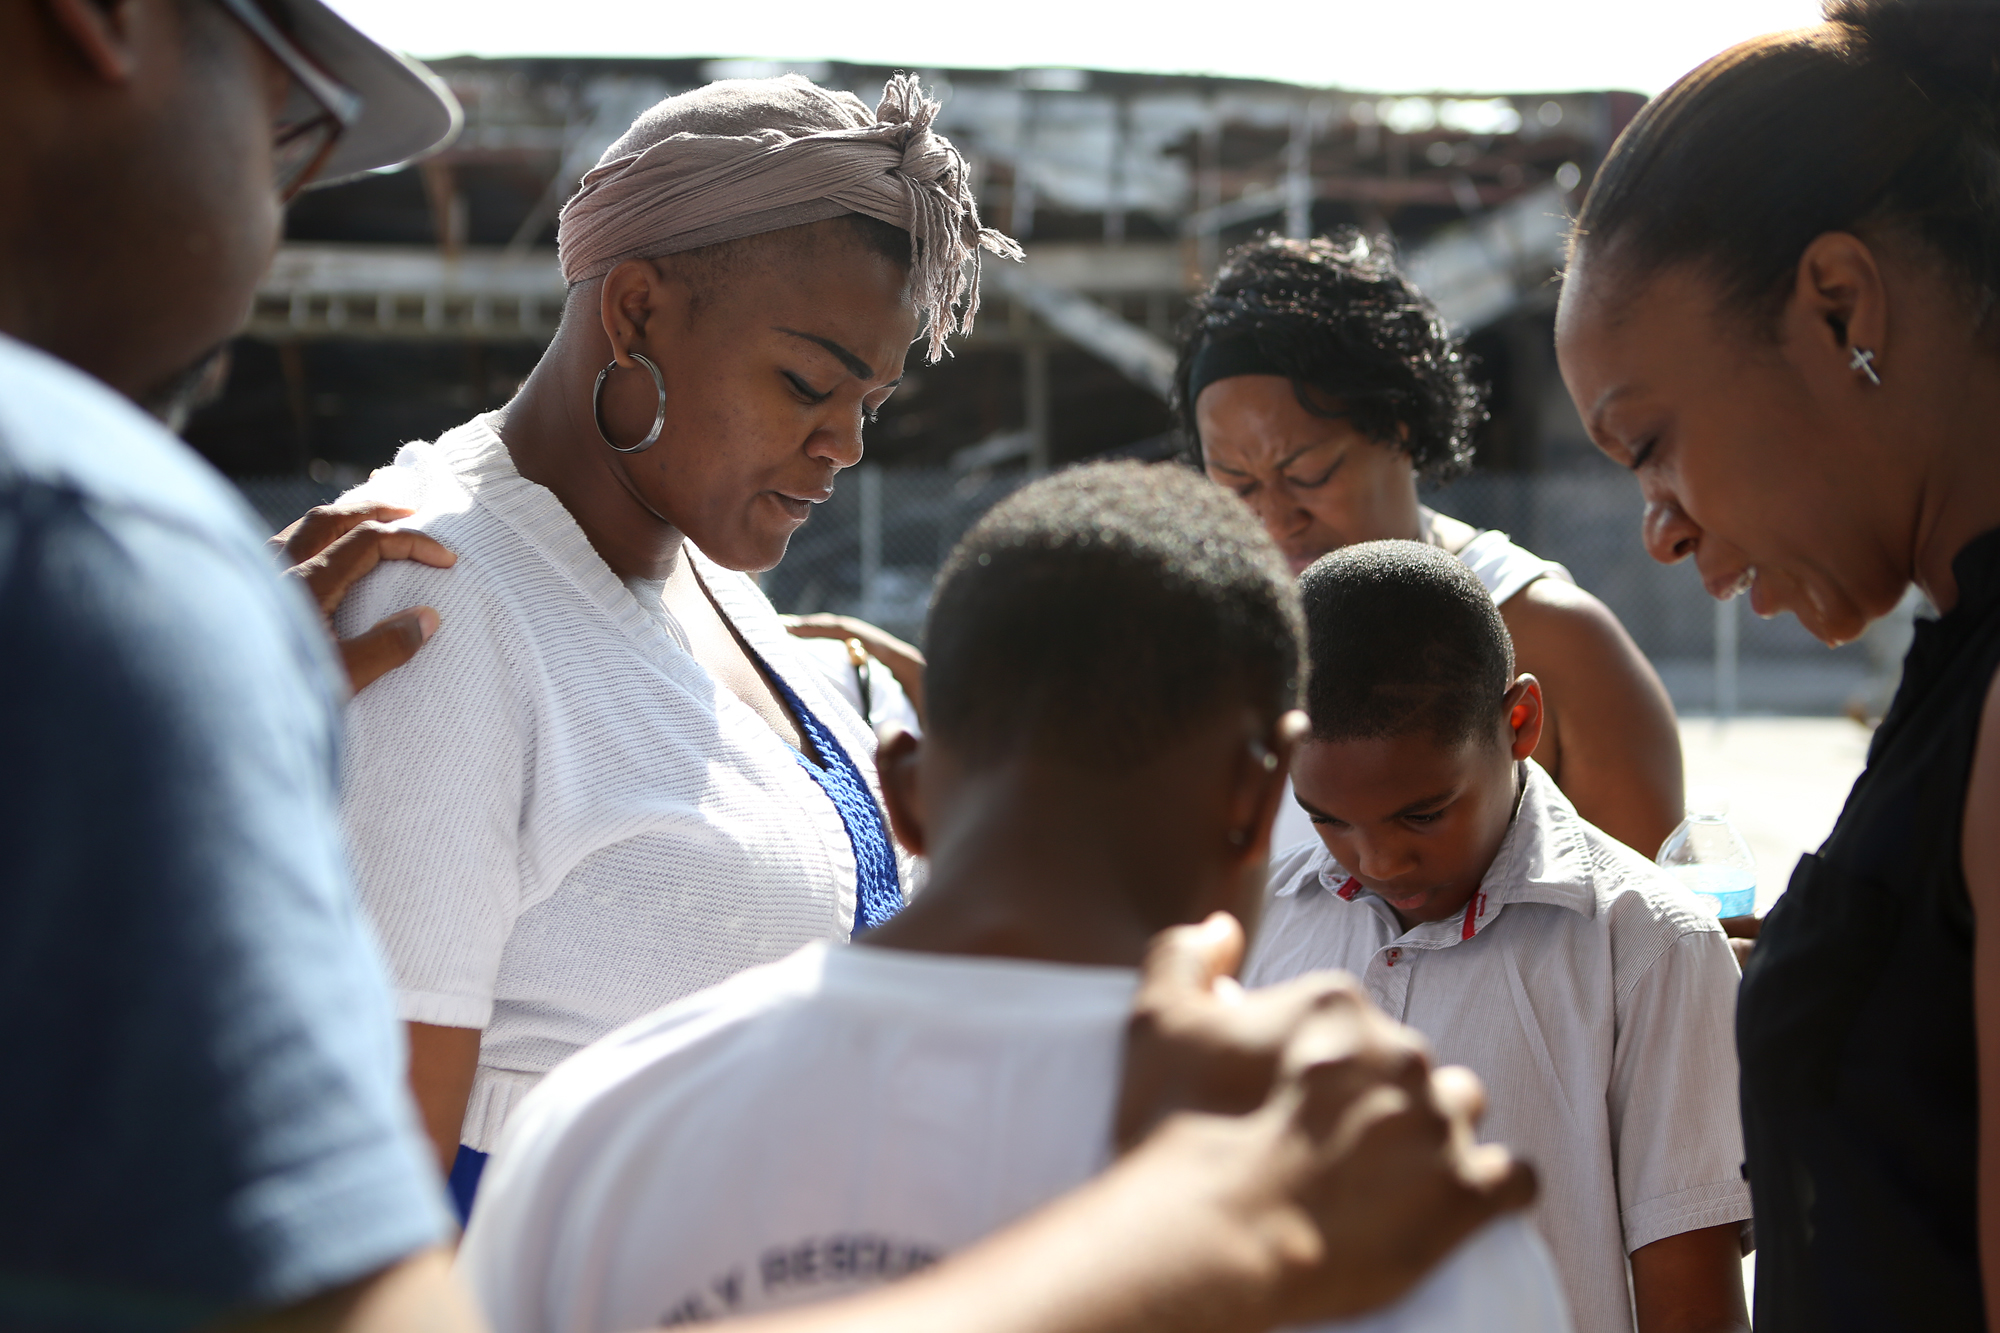 Leslie Petty (left) and Tracey Sherman (far right) lead a prayer outside the QuikTrip on W. Florissant Ave. on Friday, Aug. 15, 2014 after police released images from surveillance footage identifying Michael Brown as a suspect in a robbery shortly before he was fatally shot by police on Aug. 9, 2014. Earlier Friday morning, police also identified the name of the officer involved in the Michael Brown shooting.